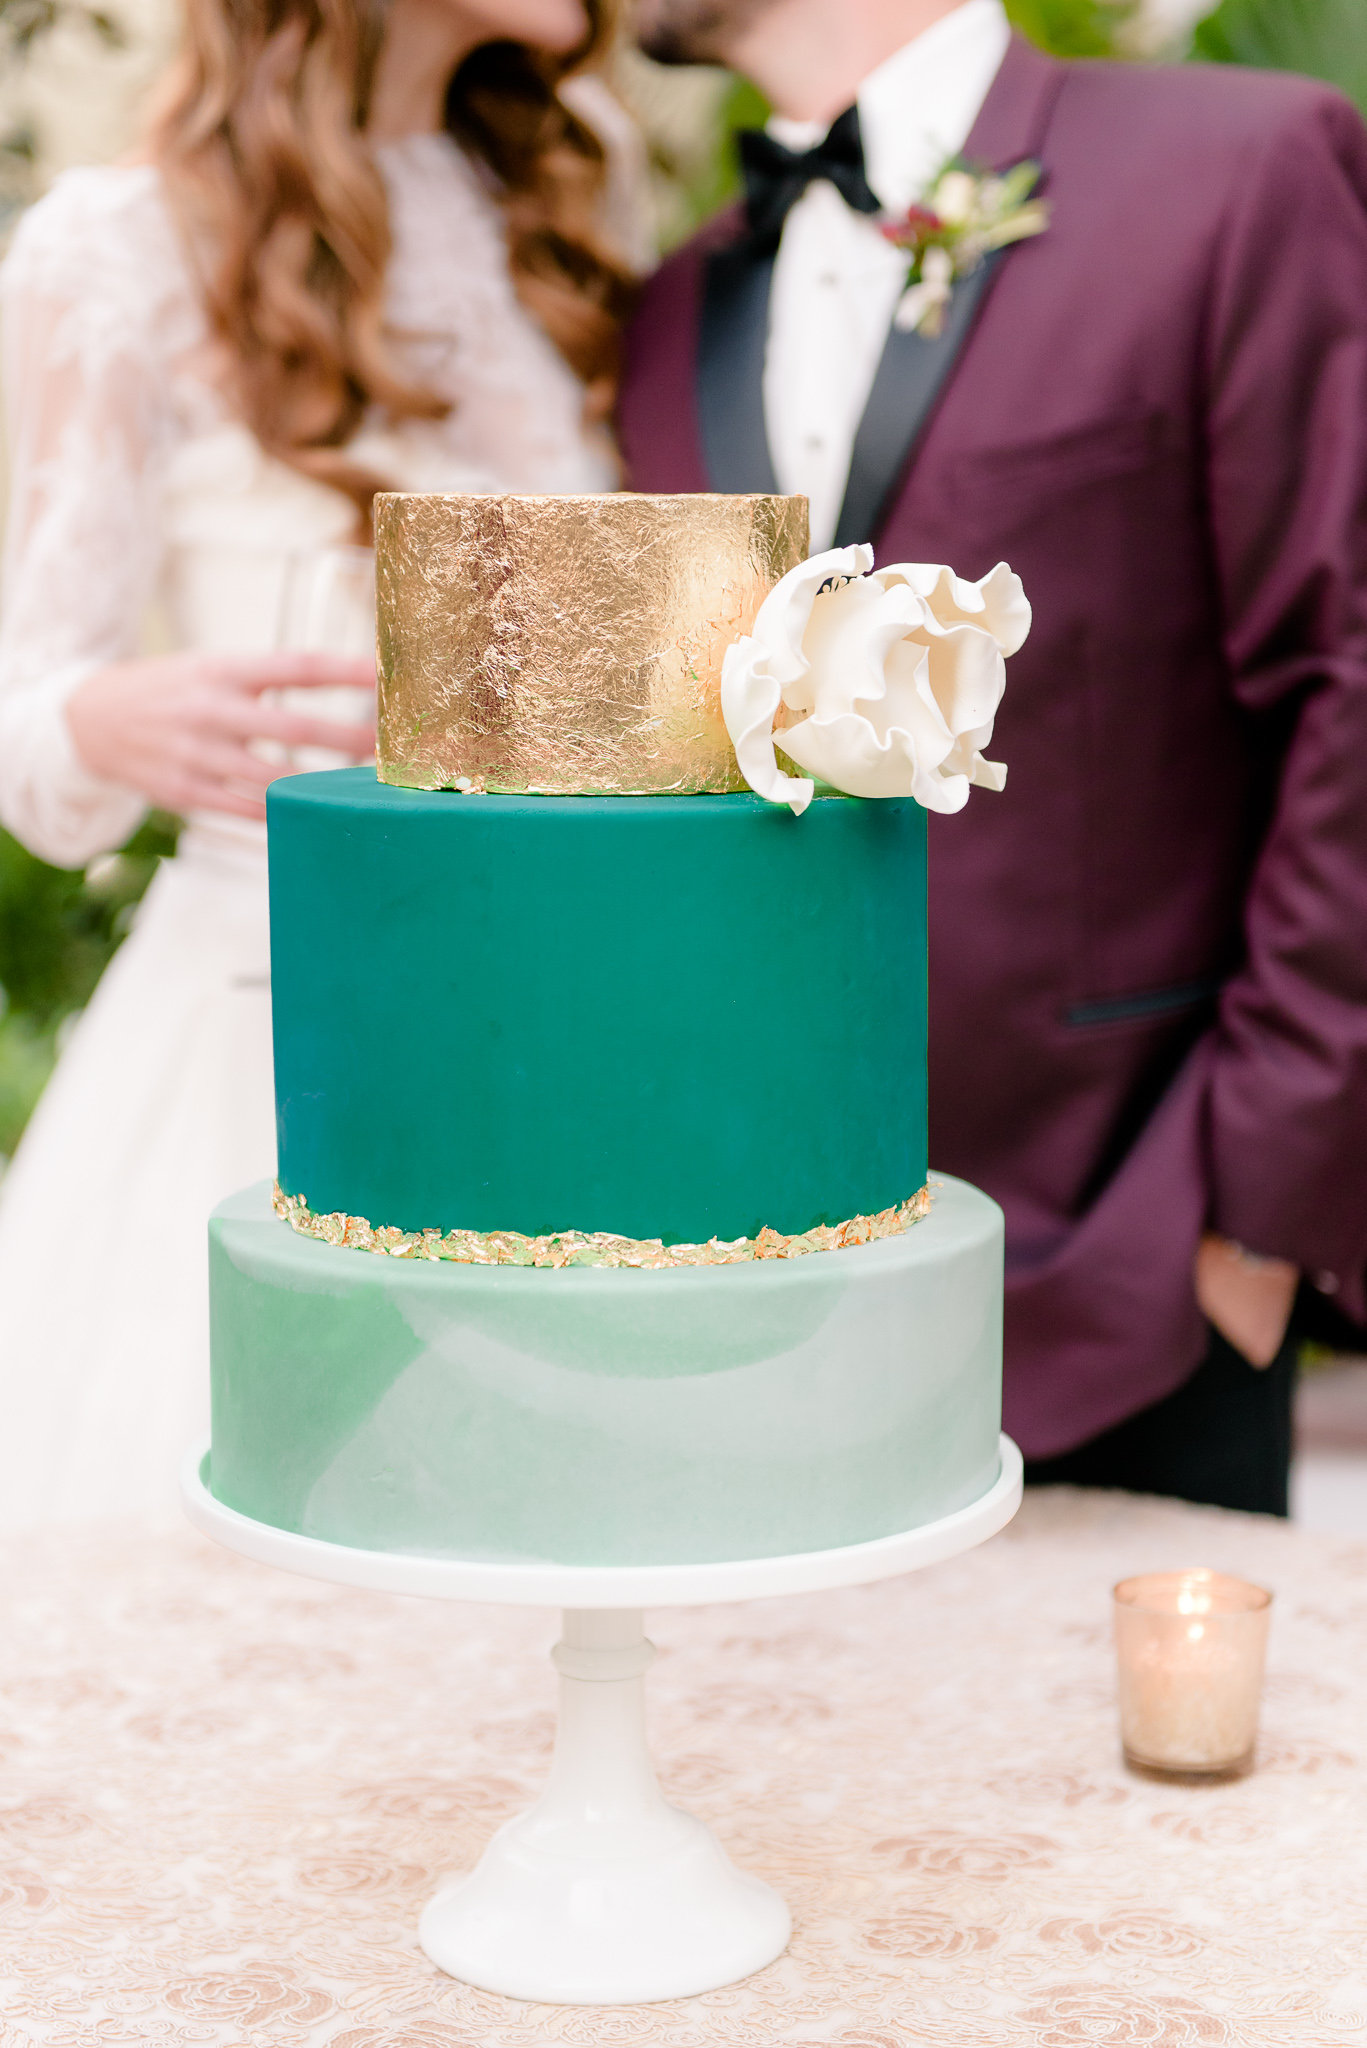 View More: http://ericandjamiephoto.pass.us/jewel-tone-styled-shoot